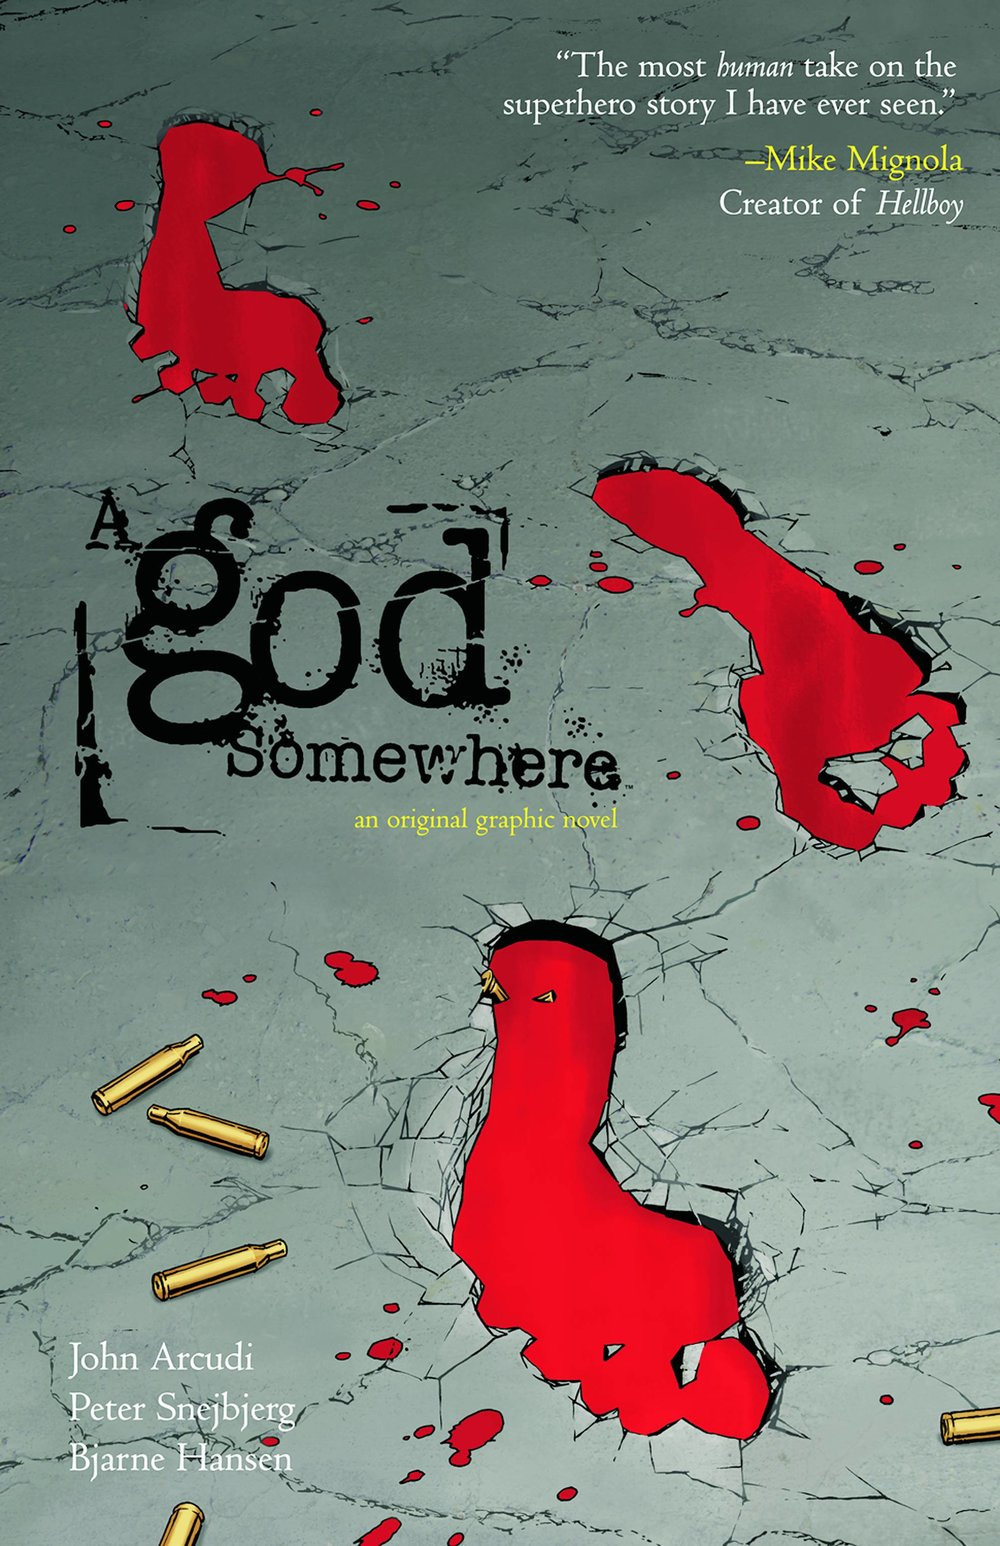 A God Somewhere - Mike's PickExploring religion, racism, morality, and family dynamics, A God Somewhere by John Arcudi (Rumble) and Peter Snejbjerg (Starman) is a bit of a hidden gem.  Initially published as an OGN by Wildstorm in 2010, this Vertigo book explores what happens to an everyman when he's inexplicably bestowed with godlike powers.  Existential and ambiguous, this violent and moody tale tracks the downfall of the ubermensch and the impact he has on his friends and family as his powers lead to alienation and mass murder.  A God Somewhere asks many questions but, I think, leaves it to the reader to decide if there are any answers.  If you don't want to look that deep, though, the book still offers a solid sci fi story told well.  Recommended for fans of Watchmen, Astro City, and Philip Wylie's novel, Gladiator.